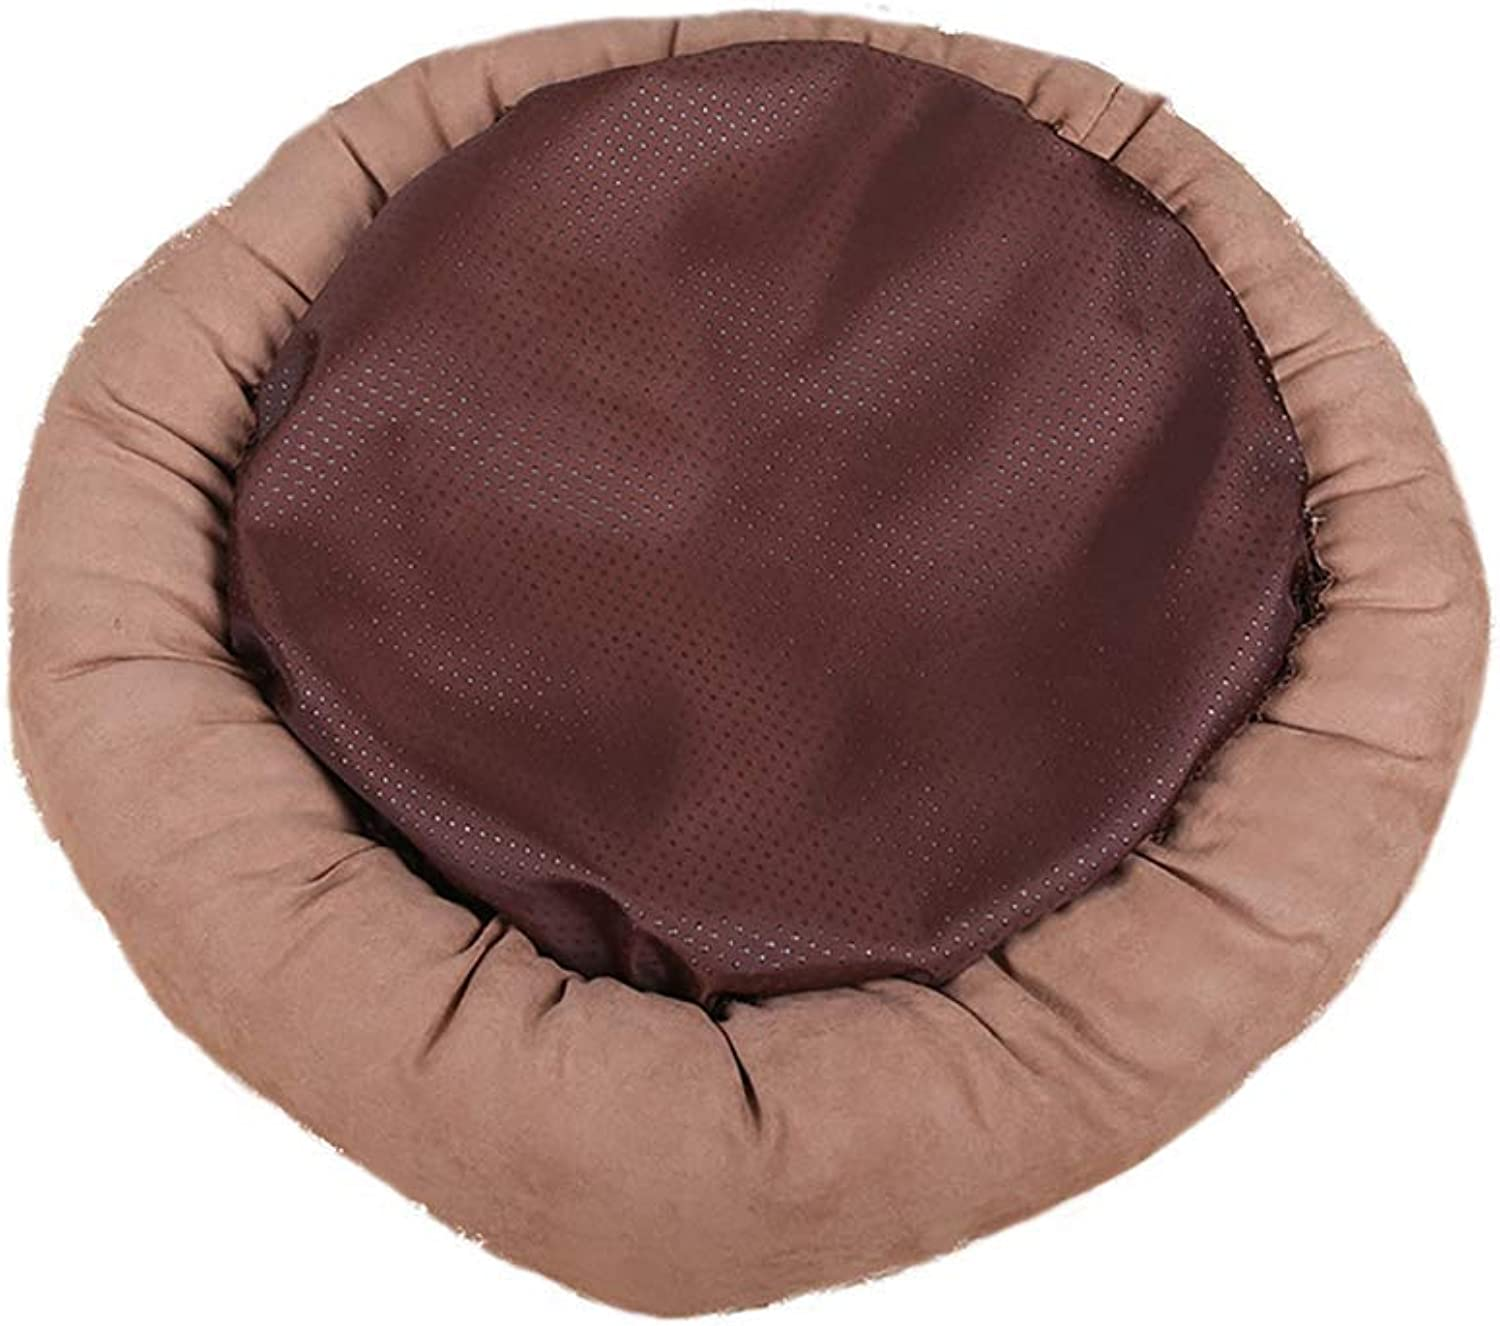 Pet Bed Pet Nest Round Kennel Cat Litter, NonSlip Sturdy and Comfortable, Suitable for Small and Medium Dogs